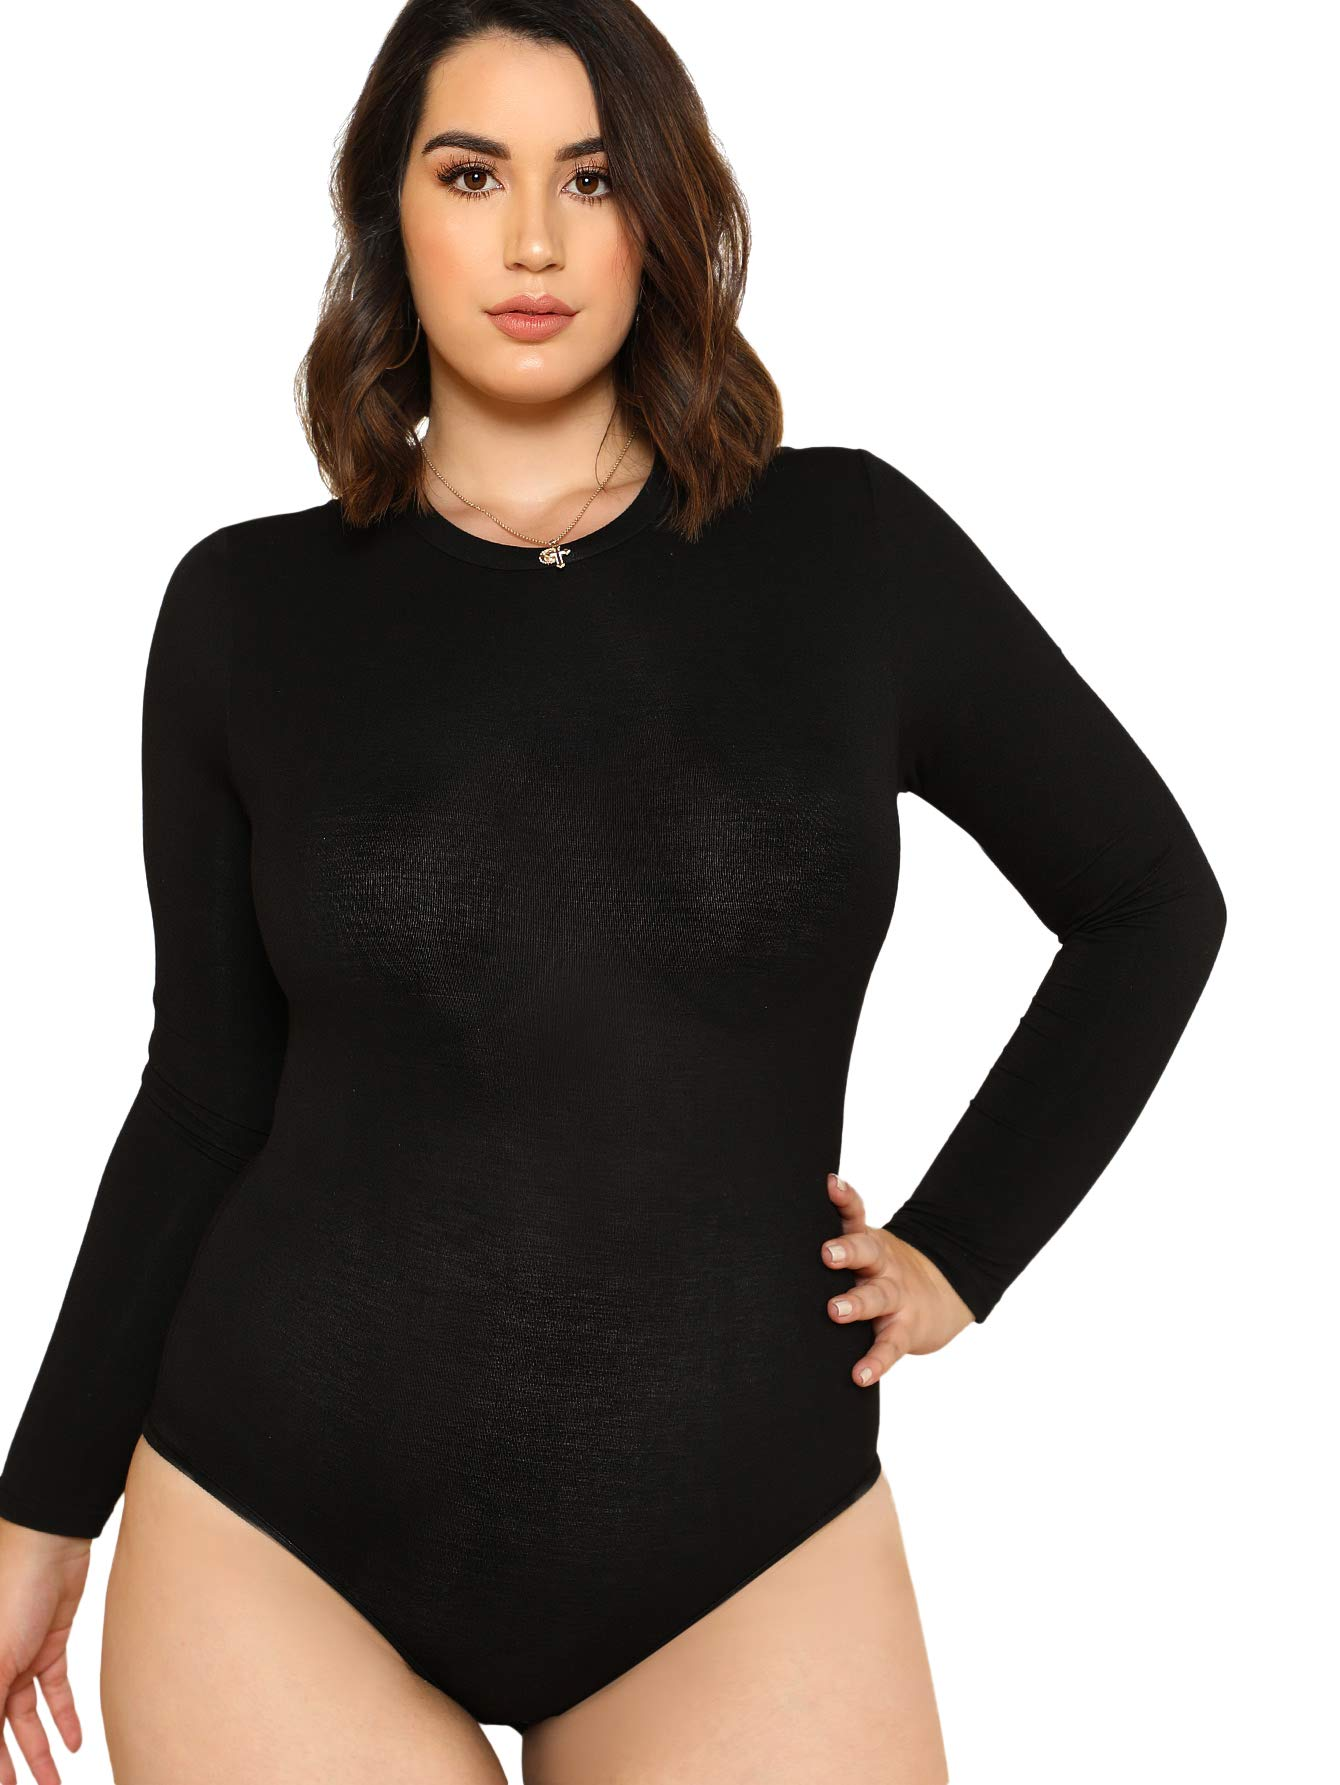 1f2a210f8f SweatyRocks Women s Plus Size Solid Long Sleeve Round Neck Slim Fitted  Leotard Bodysuit Lingerie Casual Jumpsuits Black 2XL